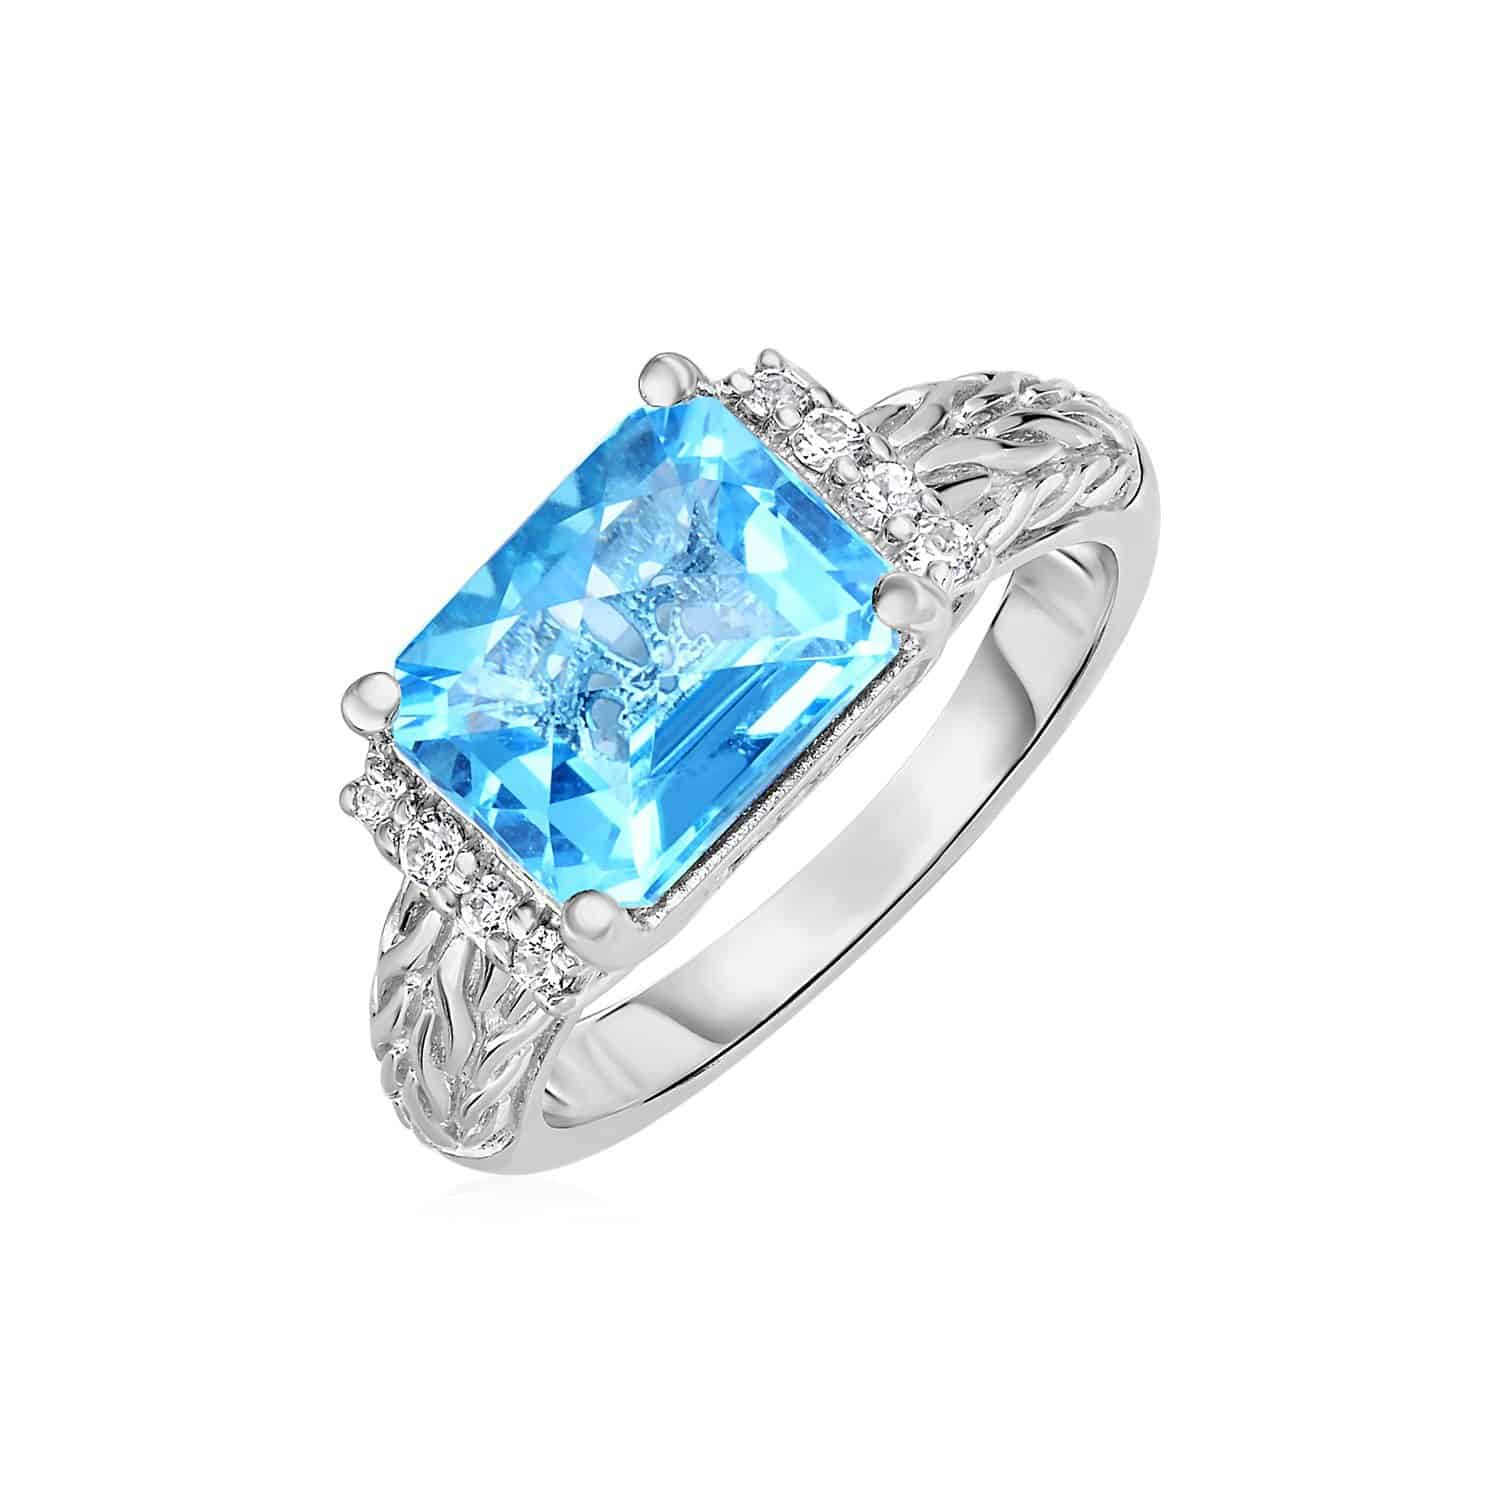 Blue Topaz and White Sapphire Ring in 18k Yellow Gold and Sterling Silver